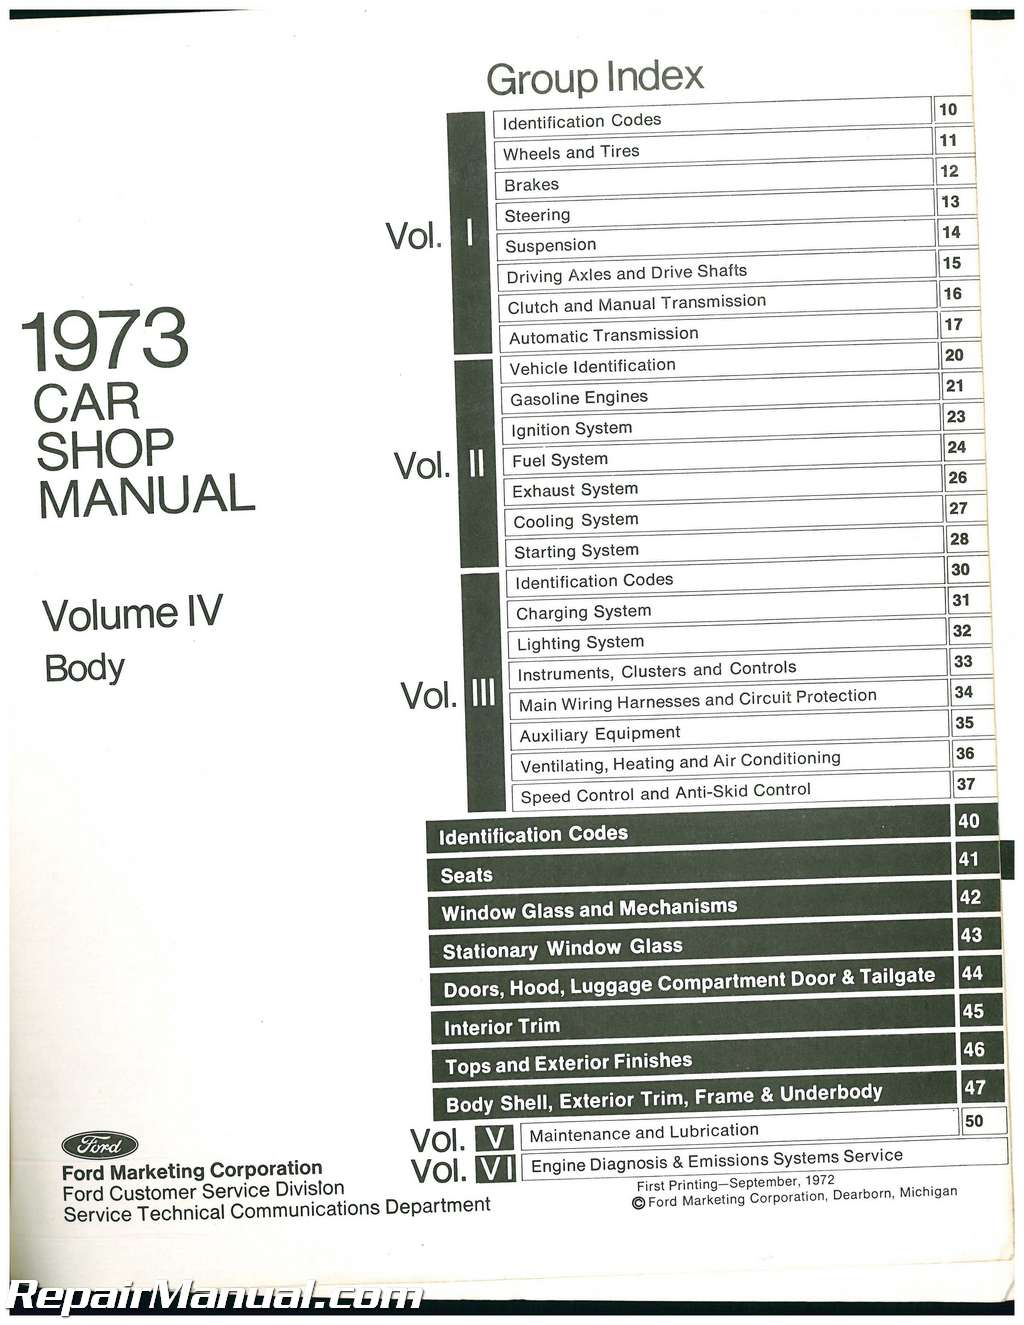 Used 1973 Ford Car Shop Manual Volume 4 Body